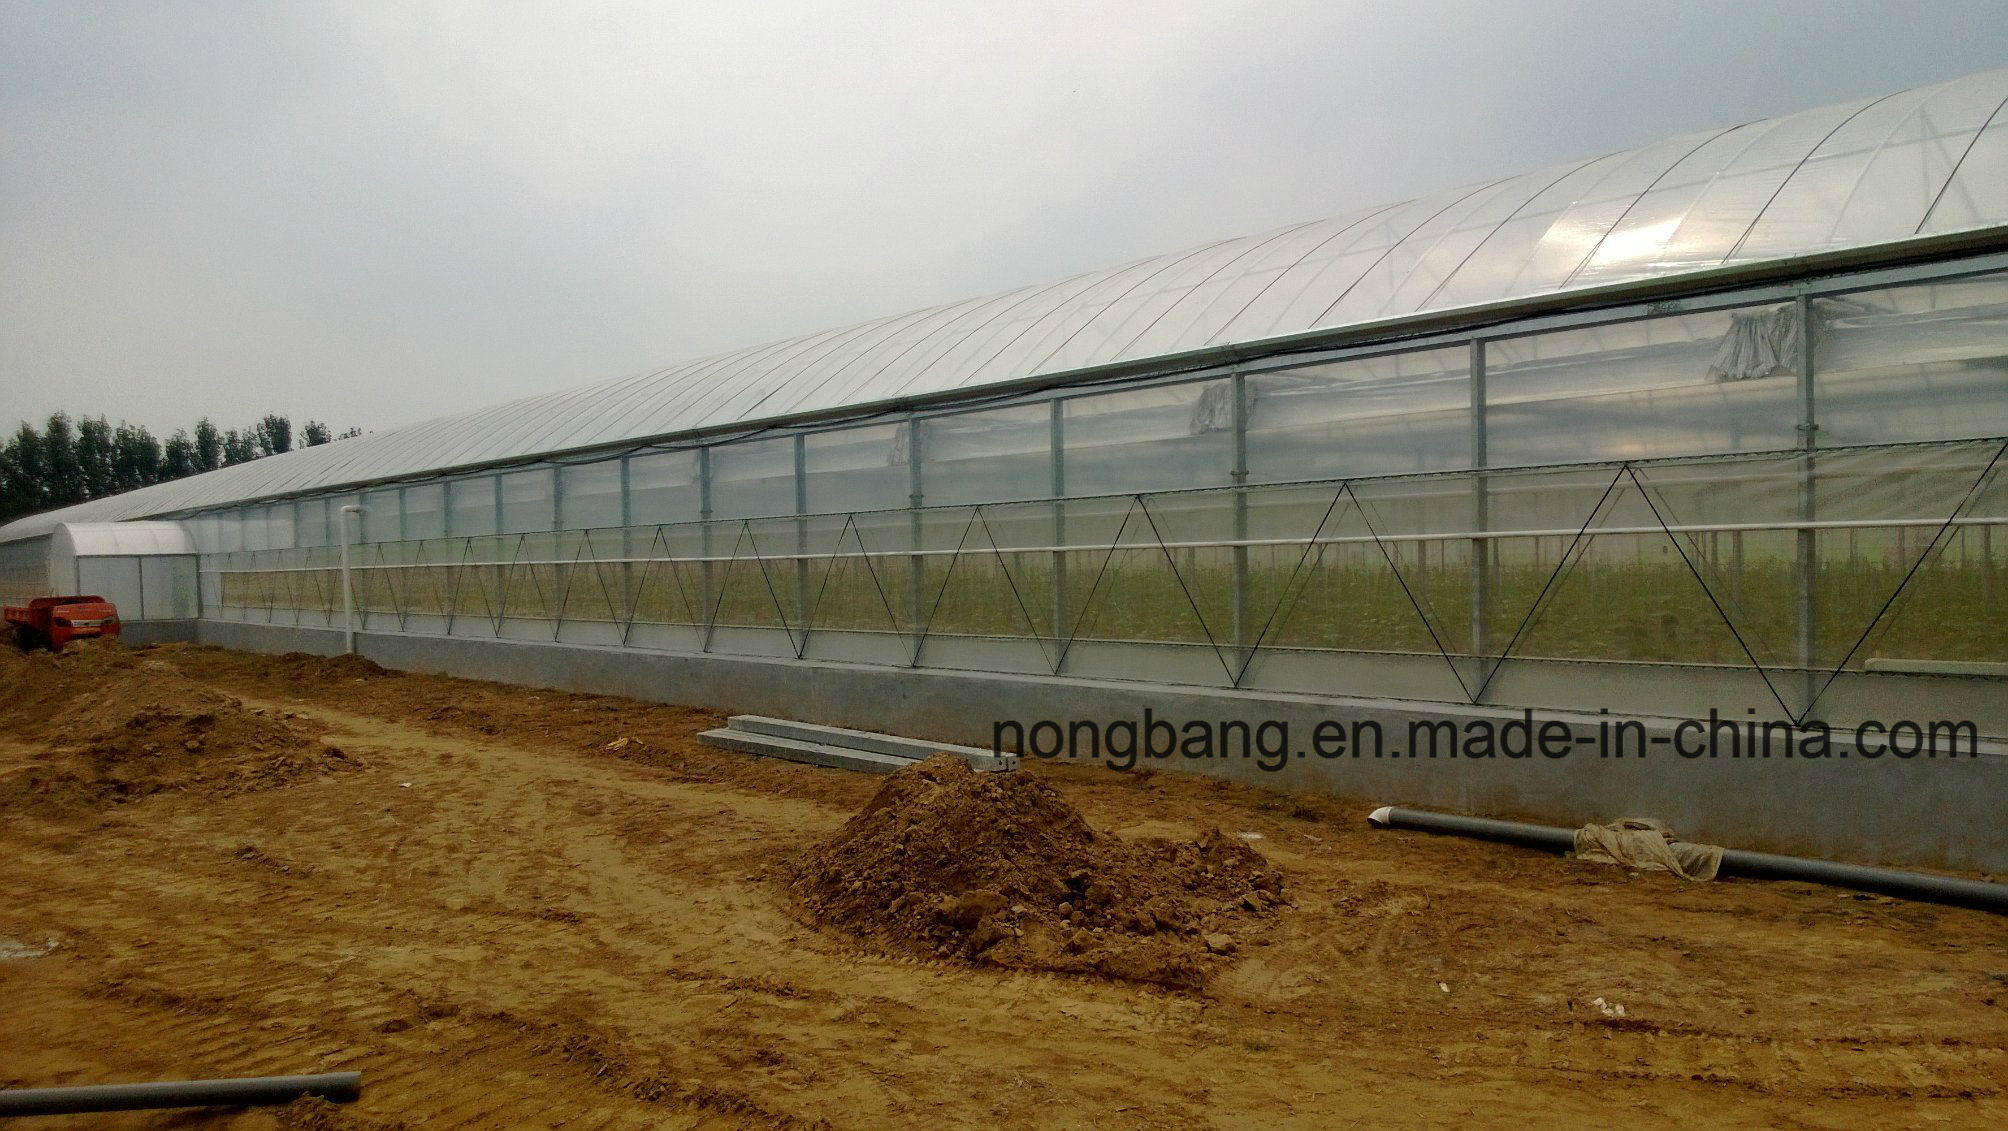 Hydroponic Growing Systems Greenhouse